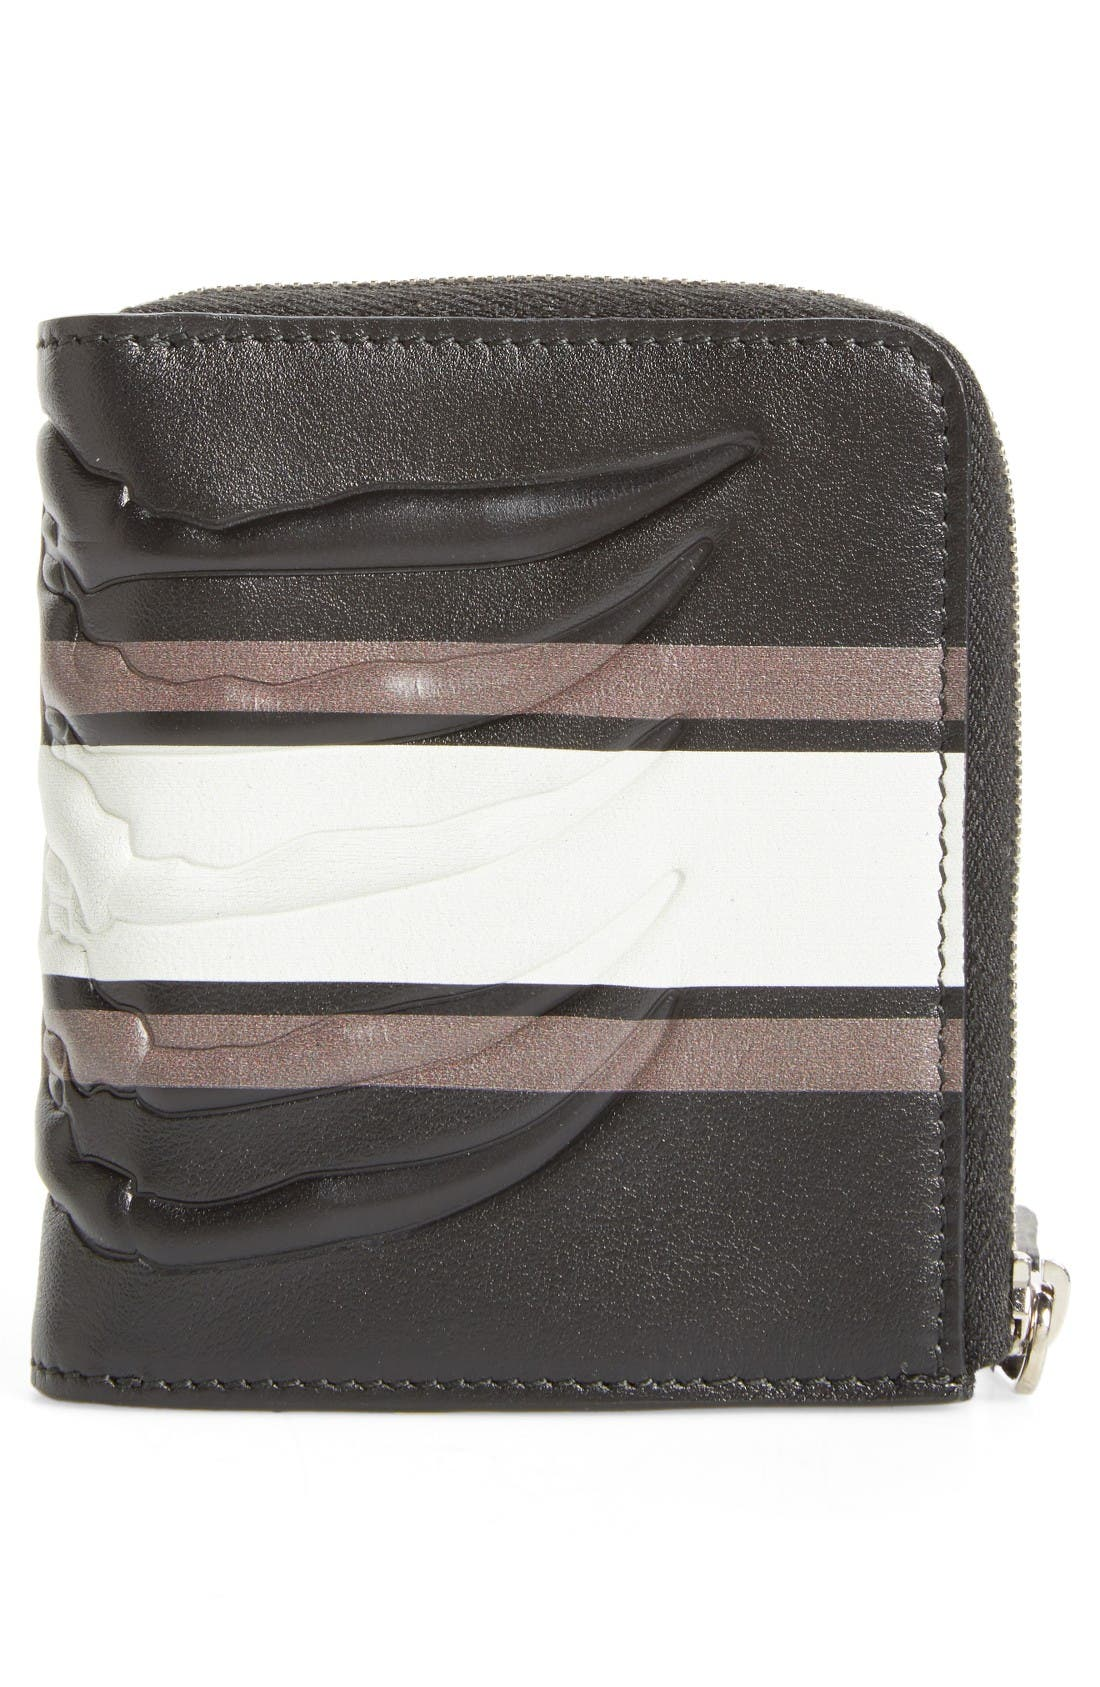 Leather Half Zip Wallet,                             Alternate thumbnail 3, color,                             Black/ Grey/ Off White